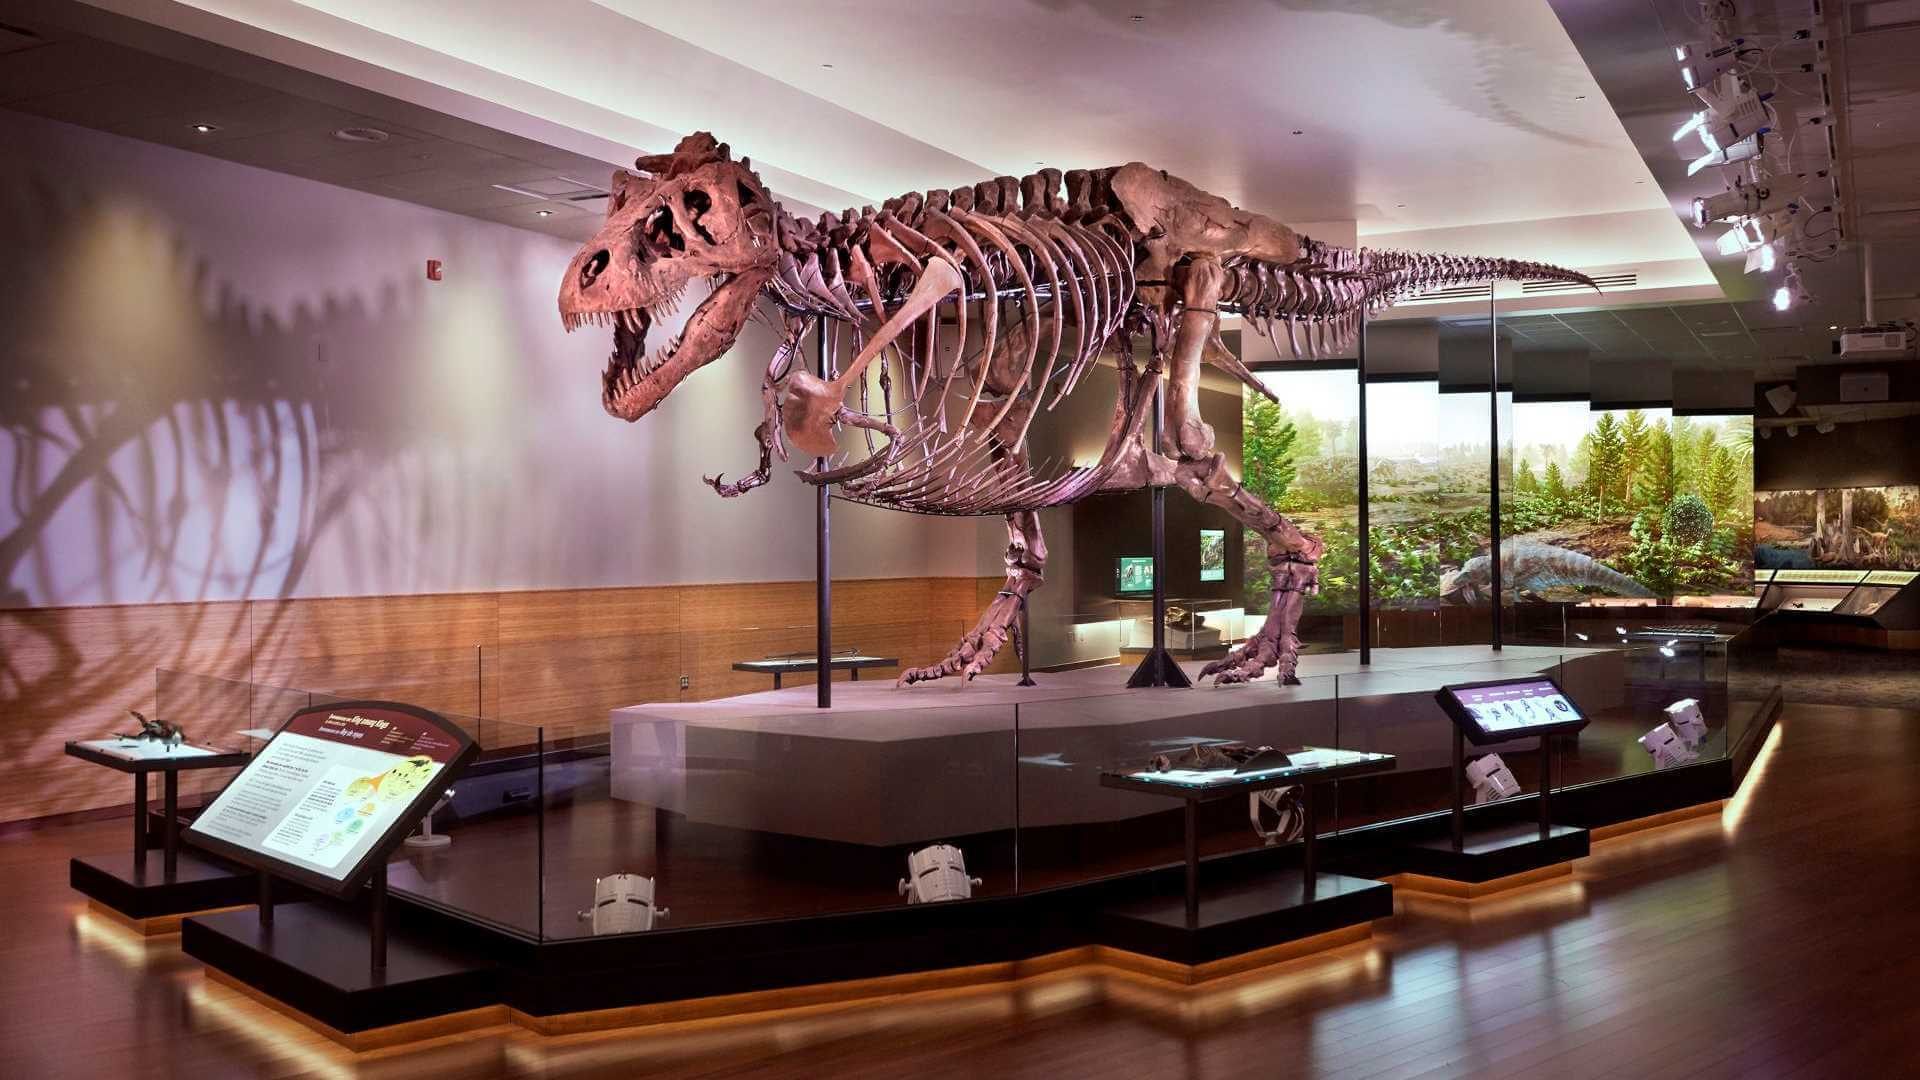 Image for SUE: The T. rex Experience